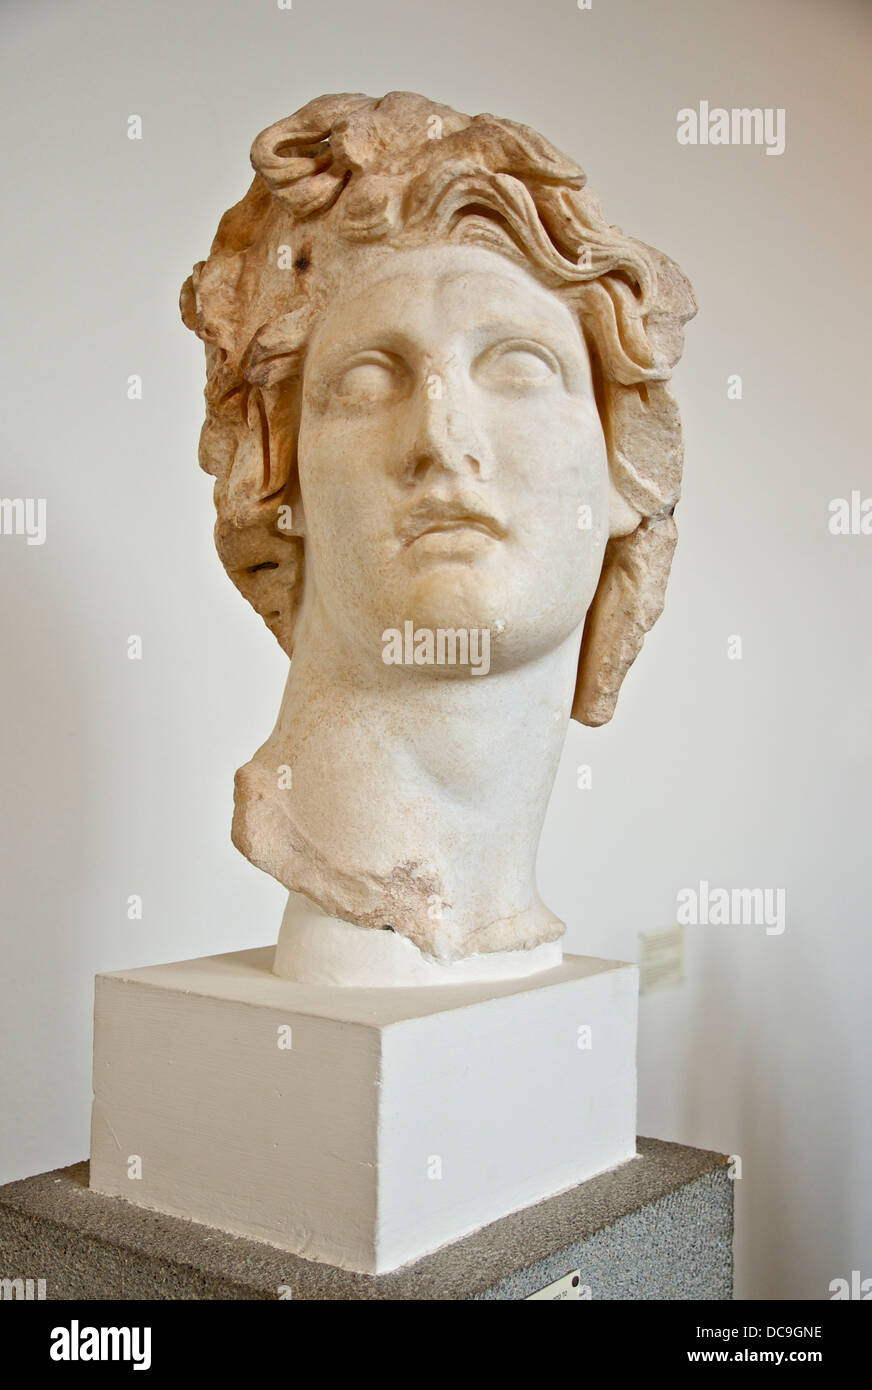 The god of island of Rhodes. Holes on the periphery of the cranium are for inserting the metal rays of his crown. - Stock Image